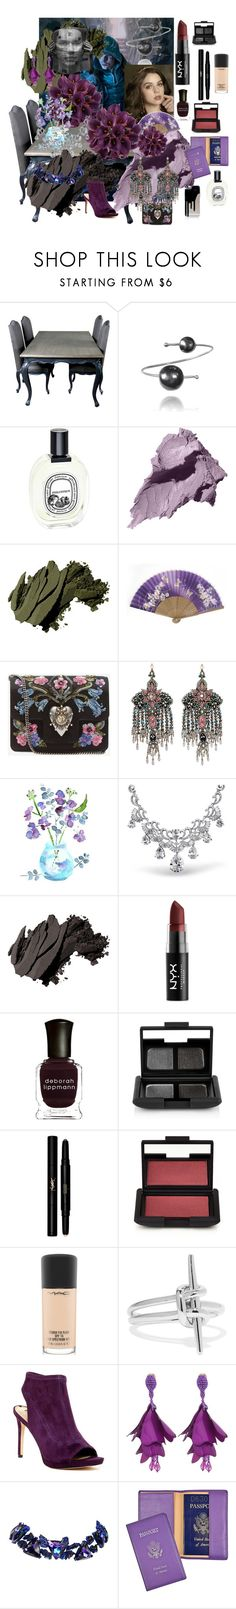 """""""Dark Hues II"""" by billiej-712 ❤ liked on Polyvore featuring beauty, Diptyque, Bobbi Brown Cosmetics, Alexander McQueen, Gucci, Bling Jewelry, NYX, Deborah Lippmann, NARS Cosmetics and Yves Saint Laurent"""